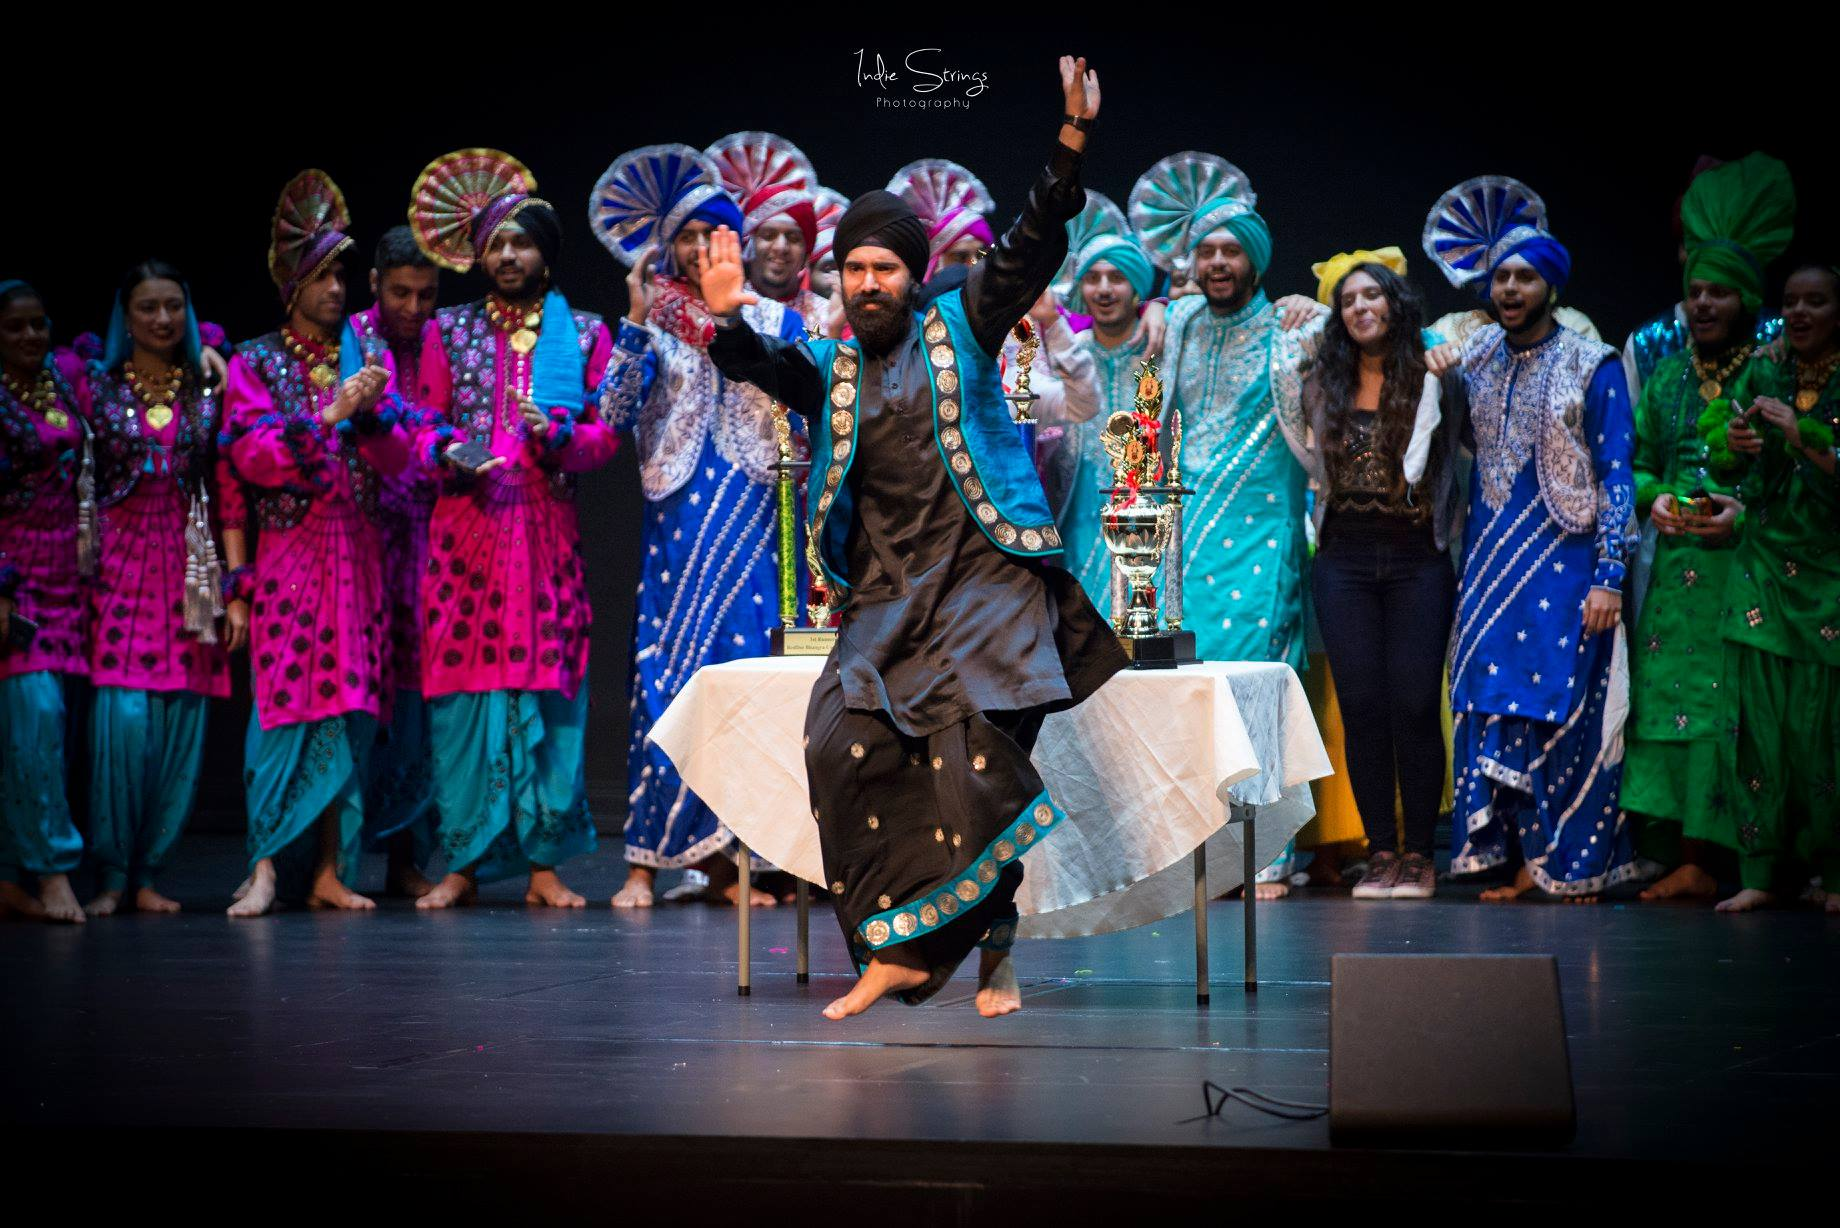 Leading from front, Hargobind Singh, Founder of RedDot Bhangra bowls the audience with his moves before the prize giving at the RedDot Bhangra International 2018 competition. Photo courtesy: IndieStrings